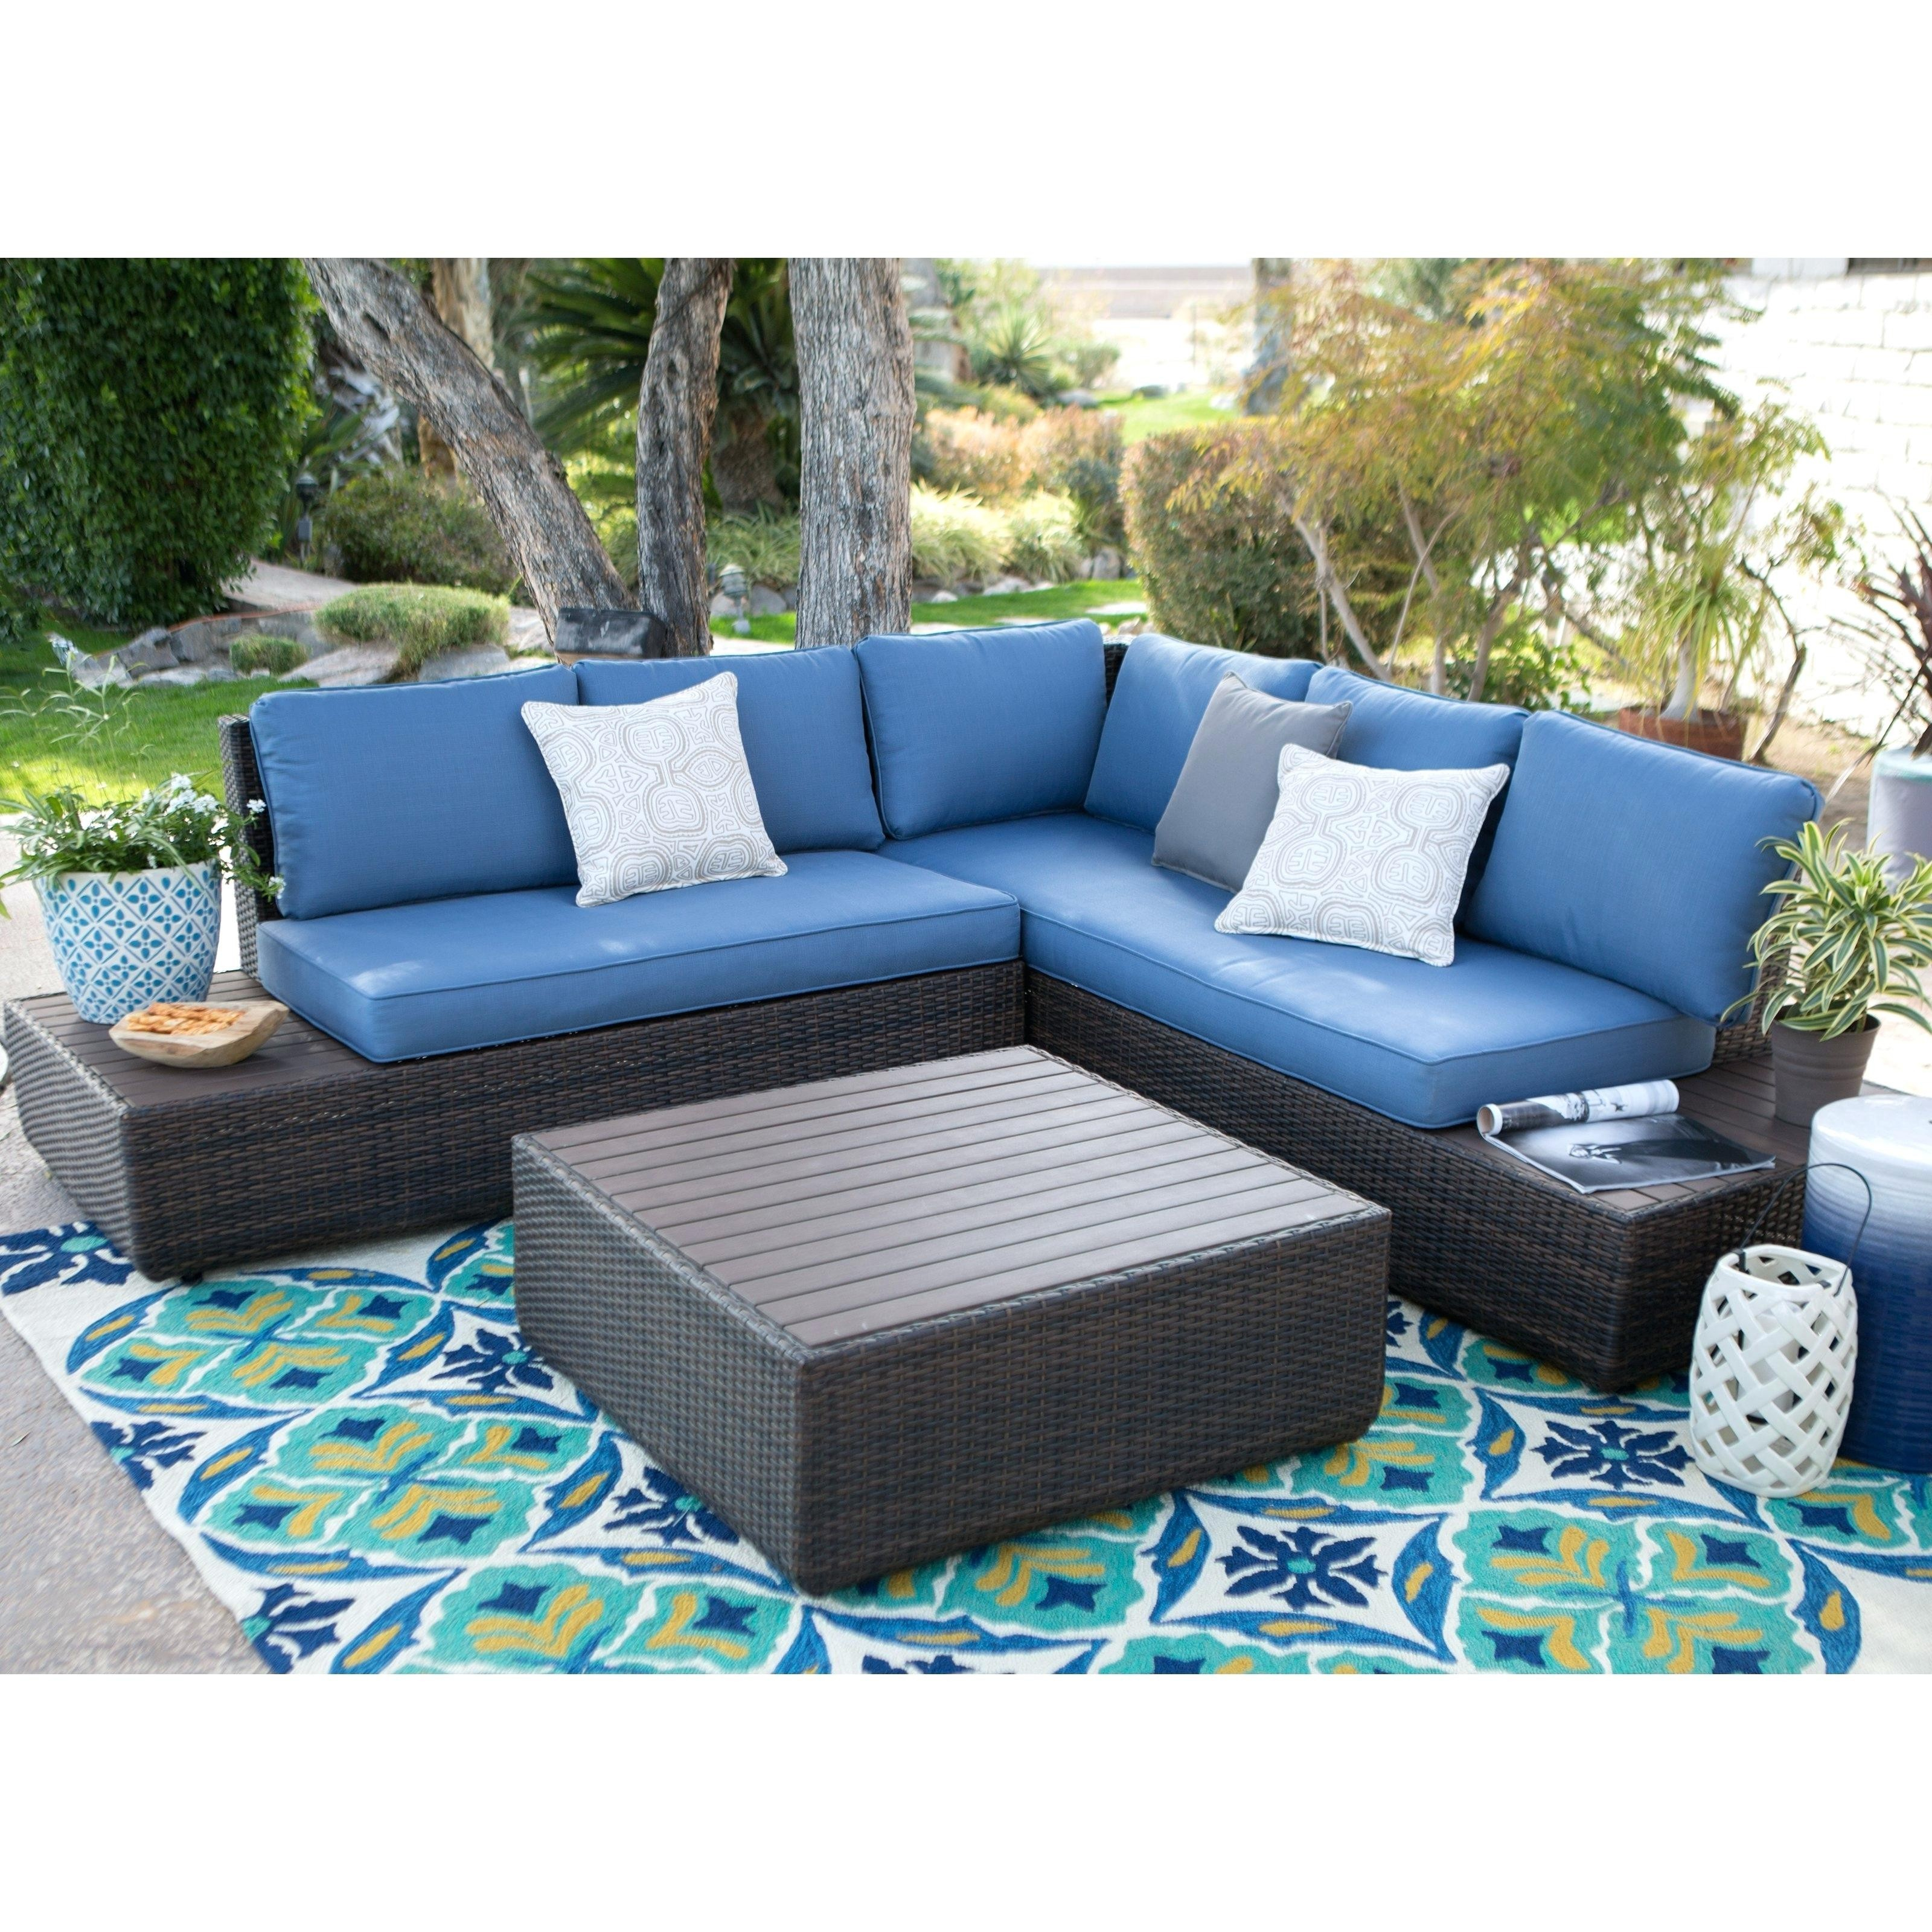 Amazon Banc De Jardin Inspirant Image 20 Luxe Amazon Salon